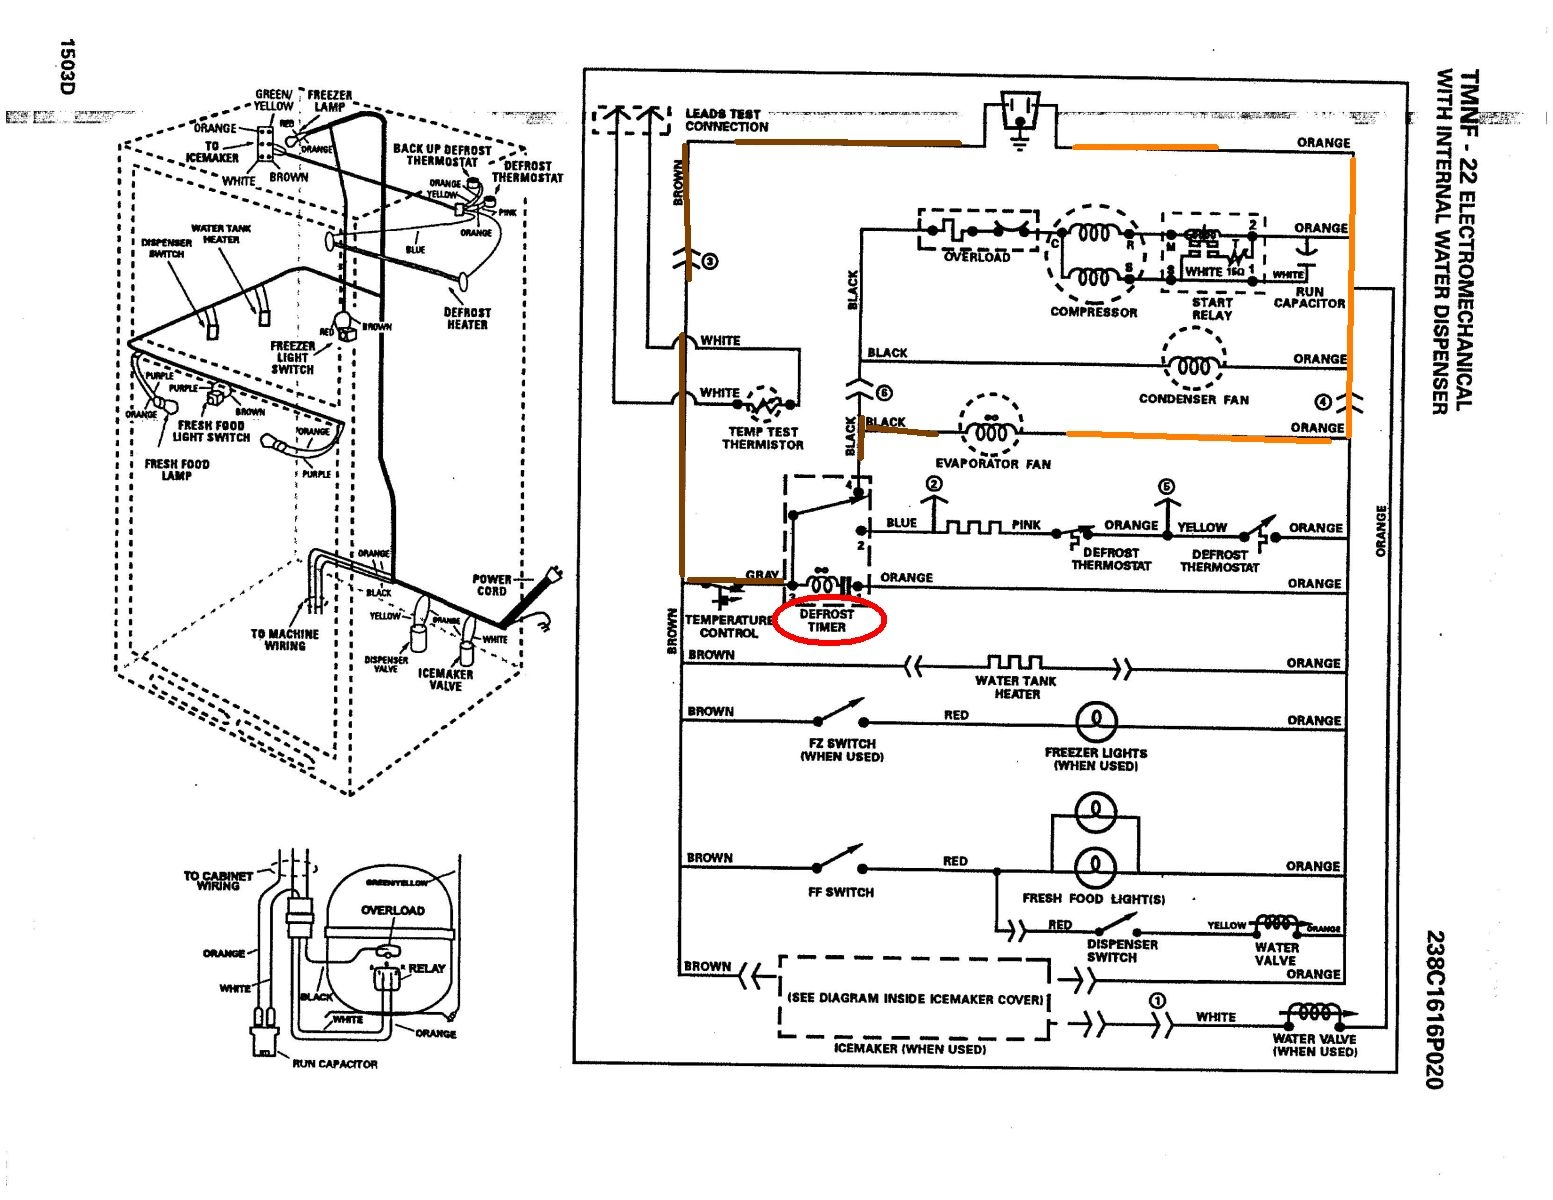 ge ballast wiring diagram for sings frigidaire ice maker wiring diagram | free wiring diagram